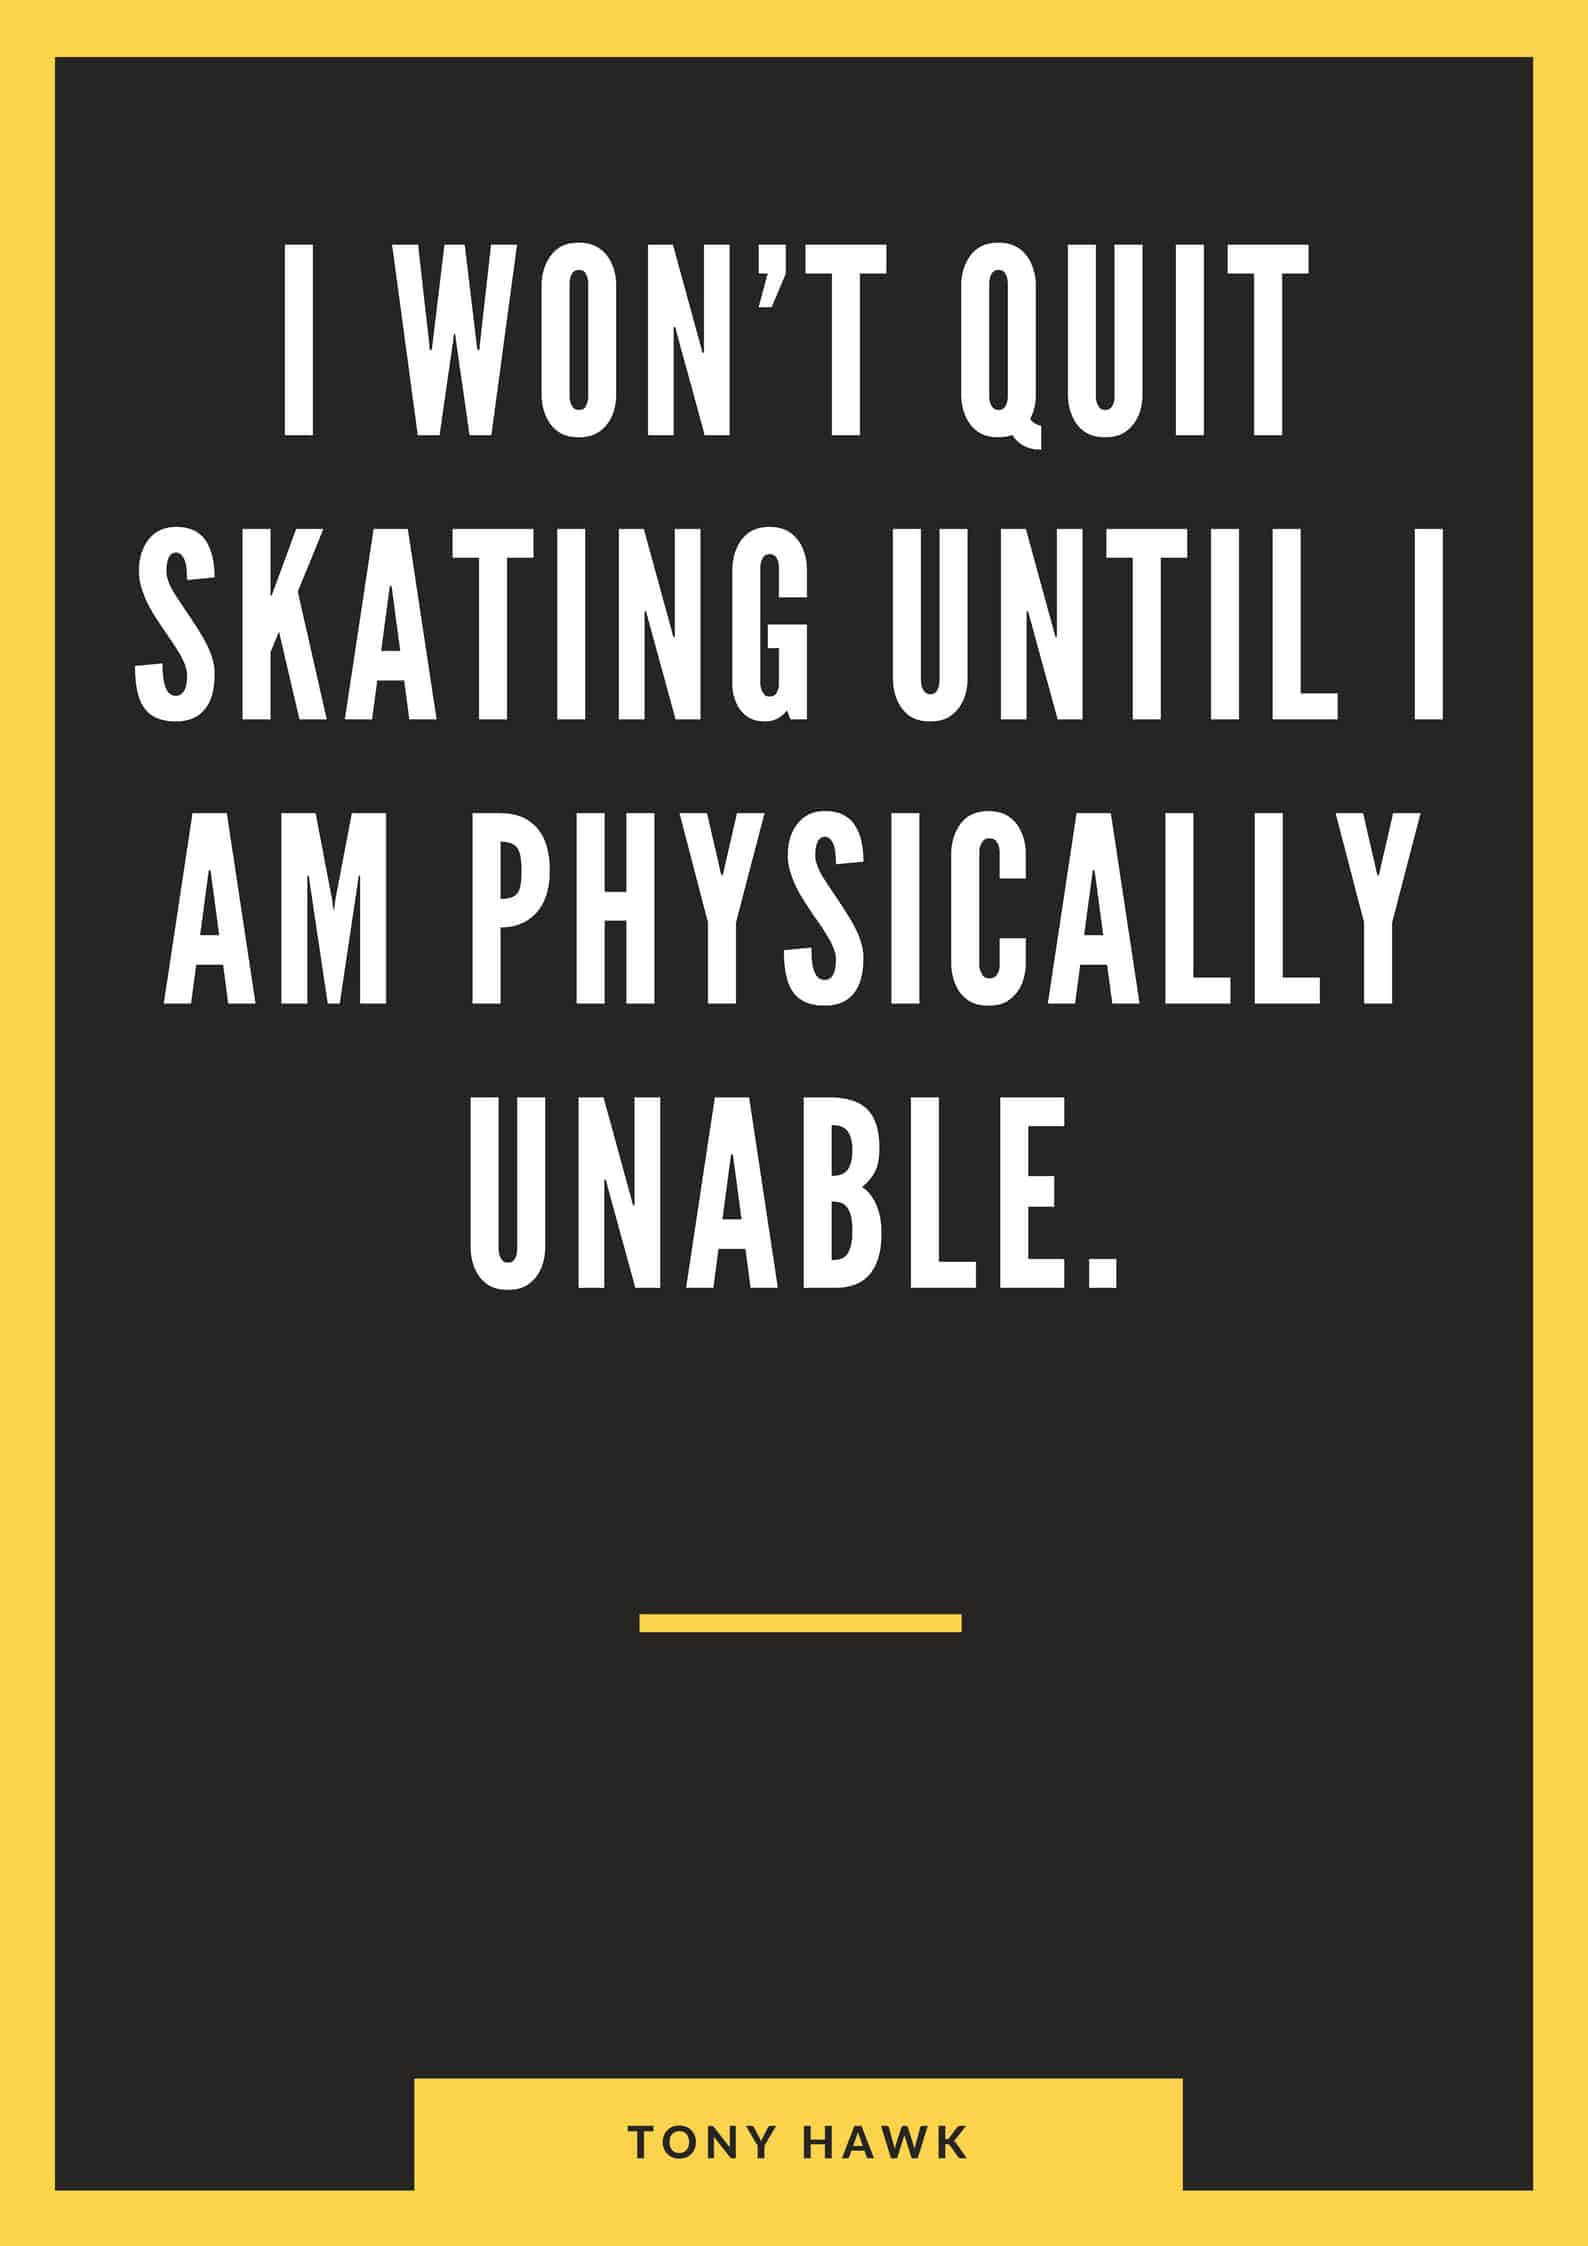 I won't quit skating until I am physically unable.